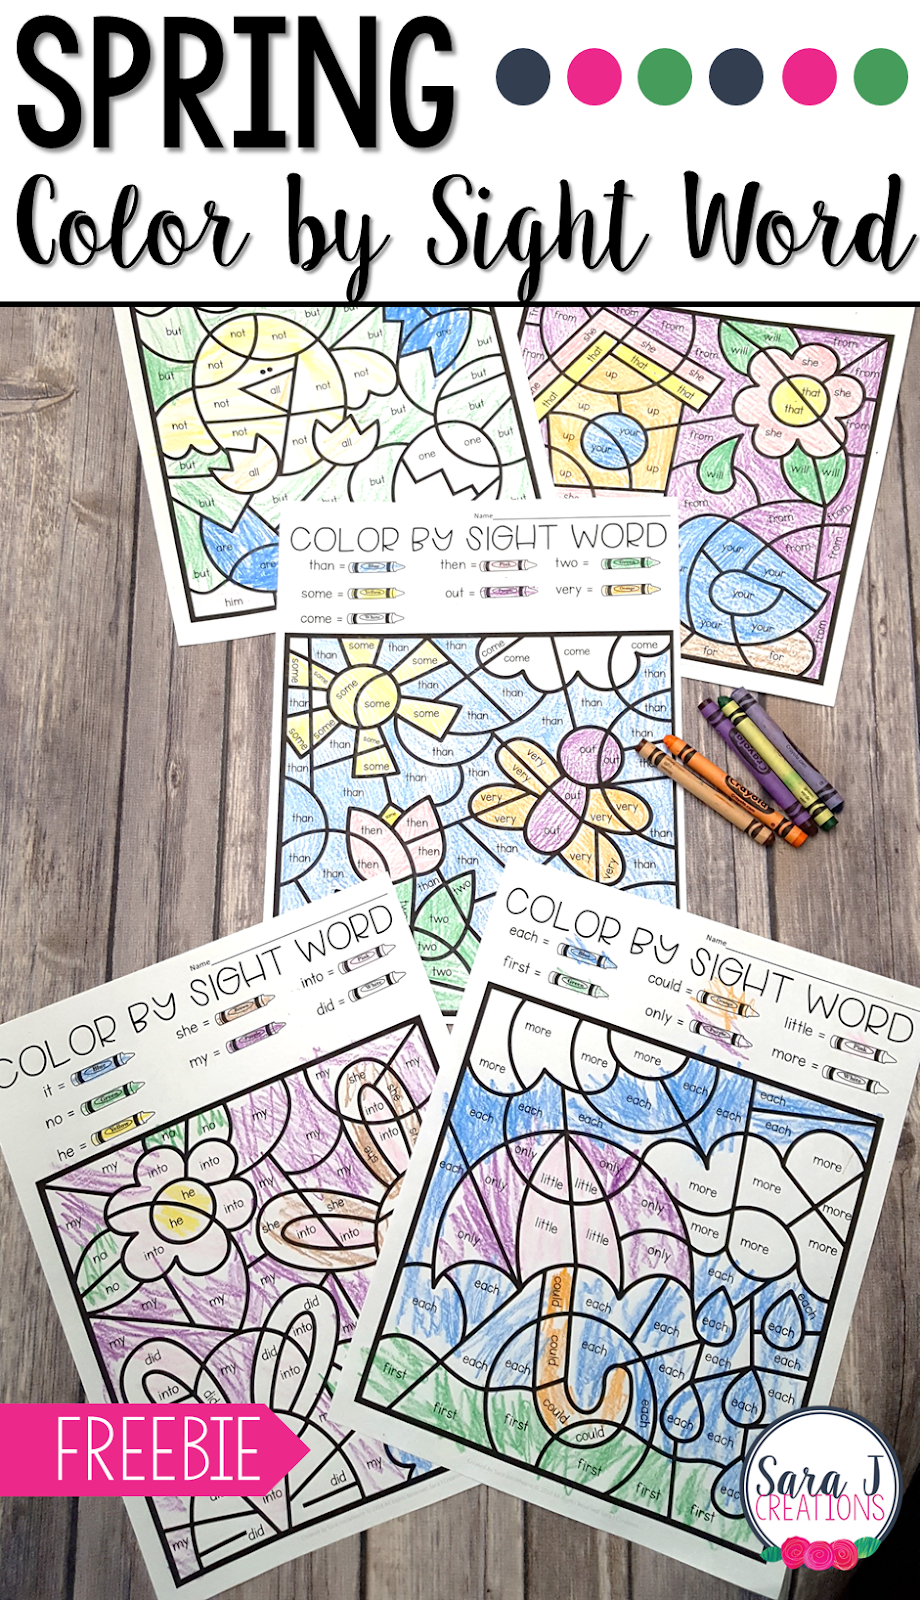 spring colorsight word  sara j creations